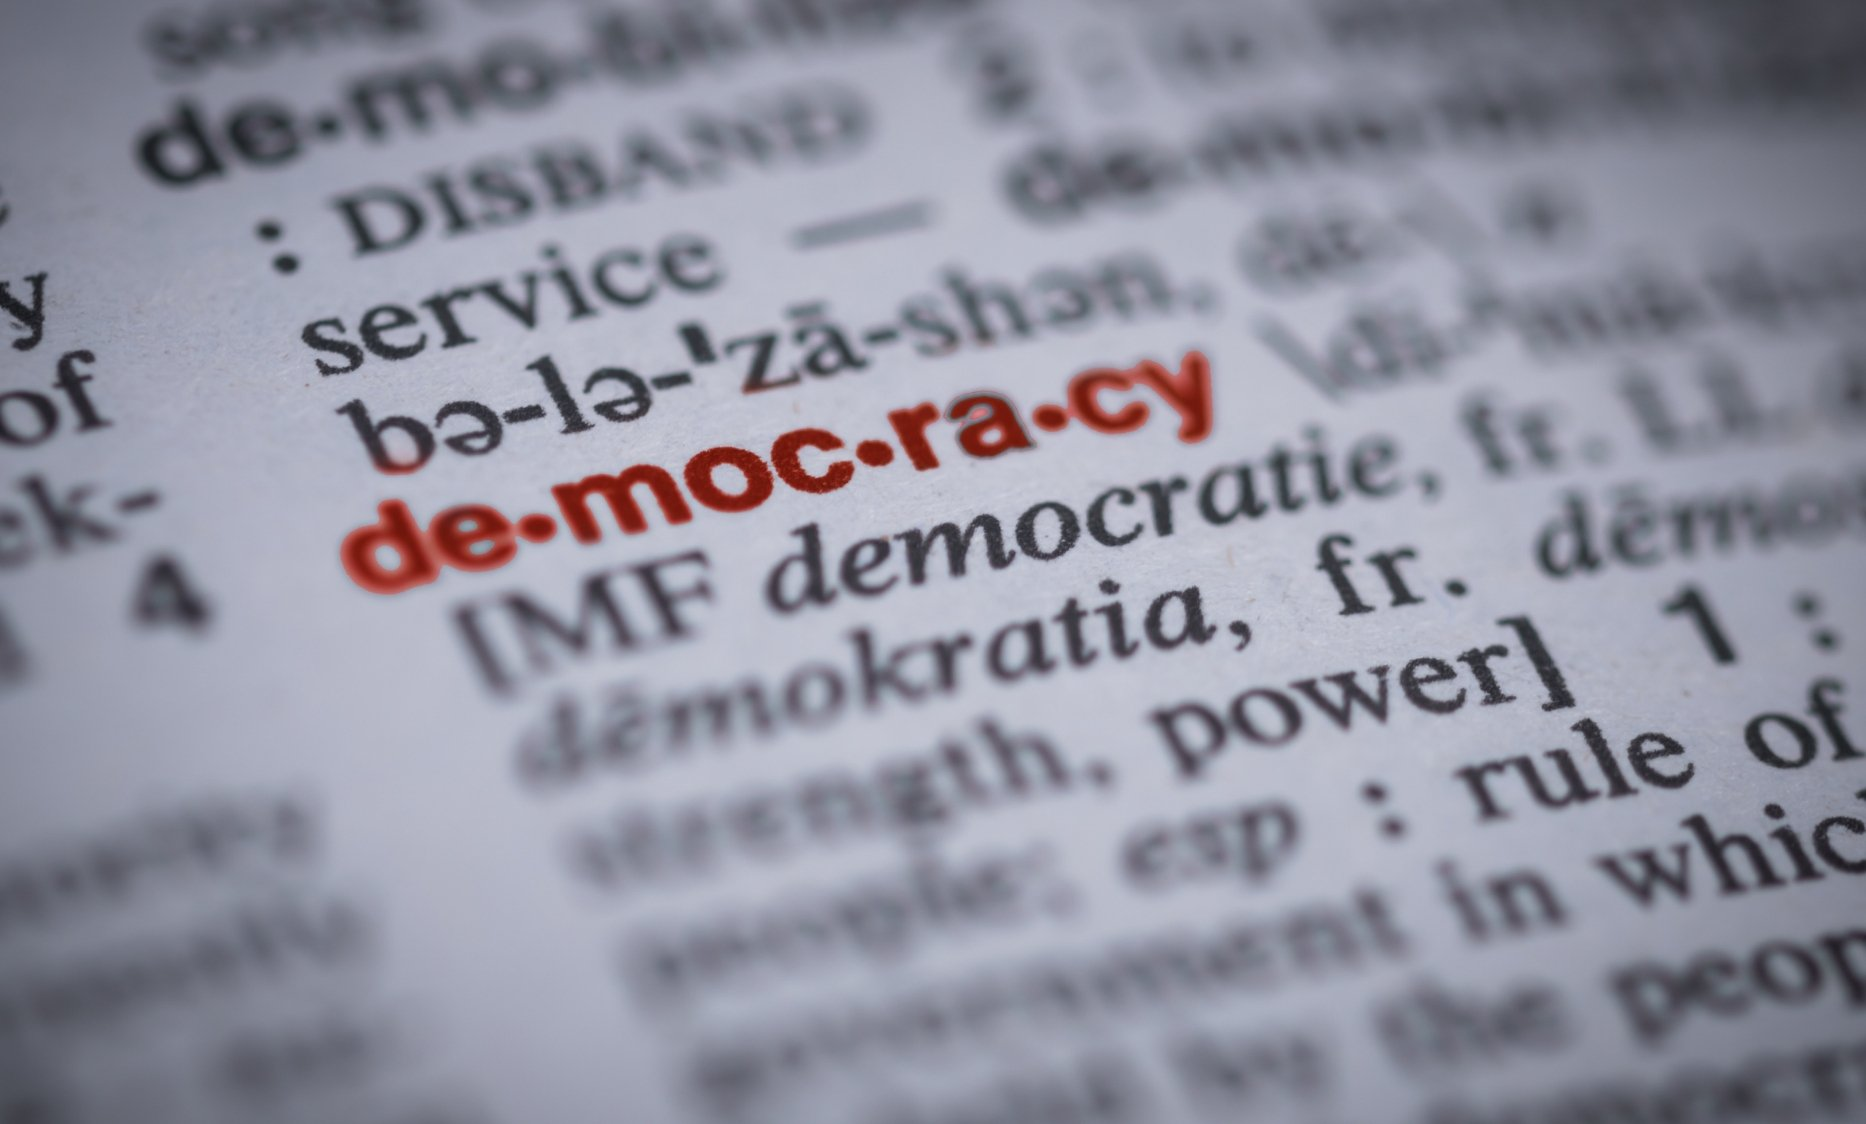 """From """"Free"""" to """"Partly Free"""" – The Story of Decline in Democracy on the World's Largest Democracy - Digpu News"""